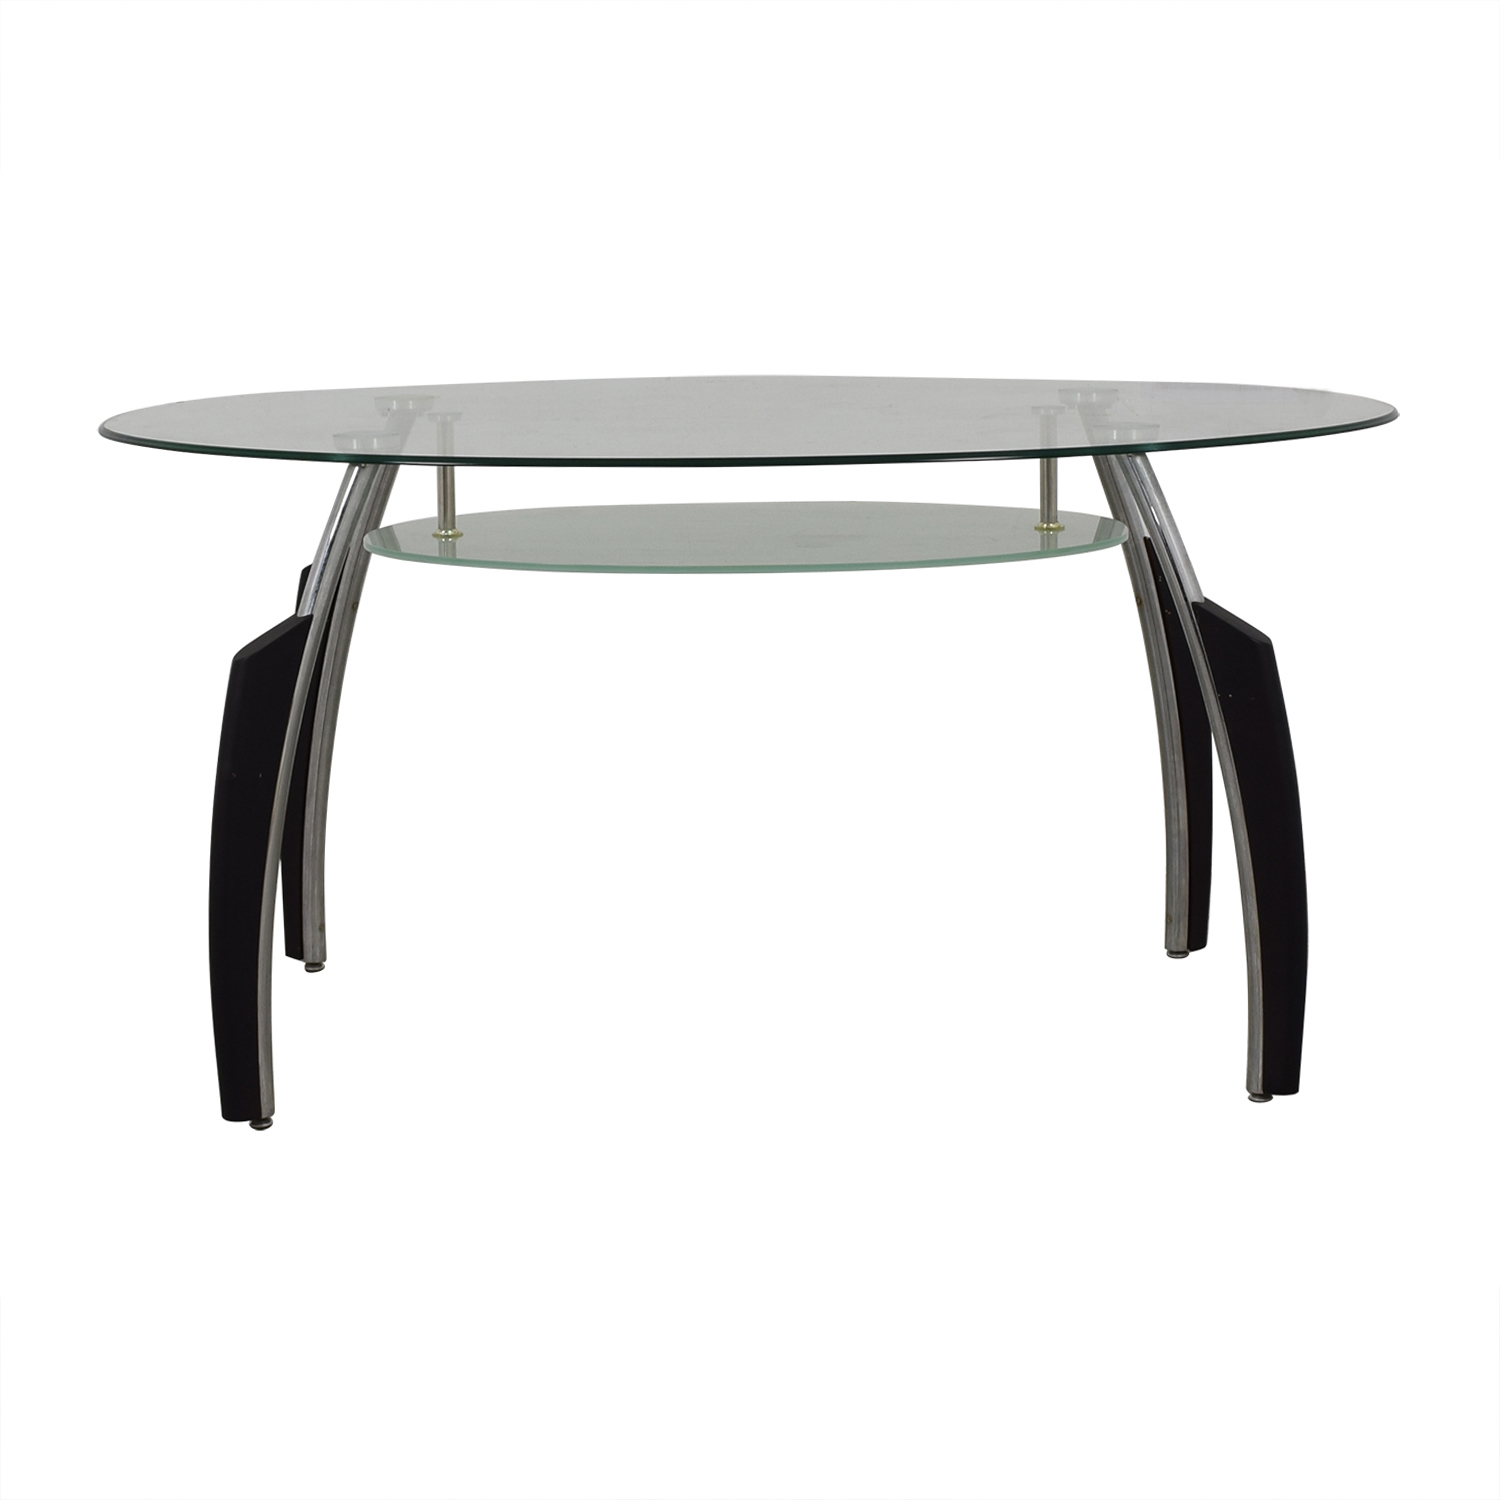 AE Furniture Glass and Chrome Dining / Tables